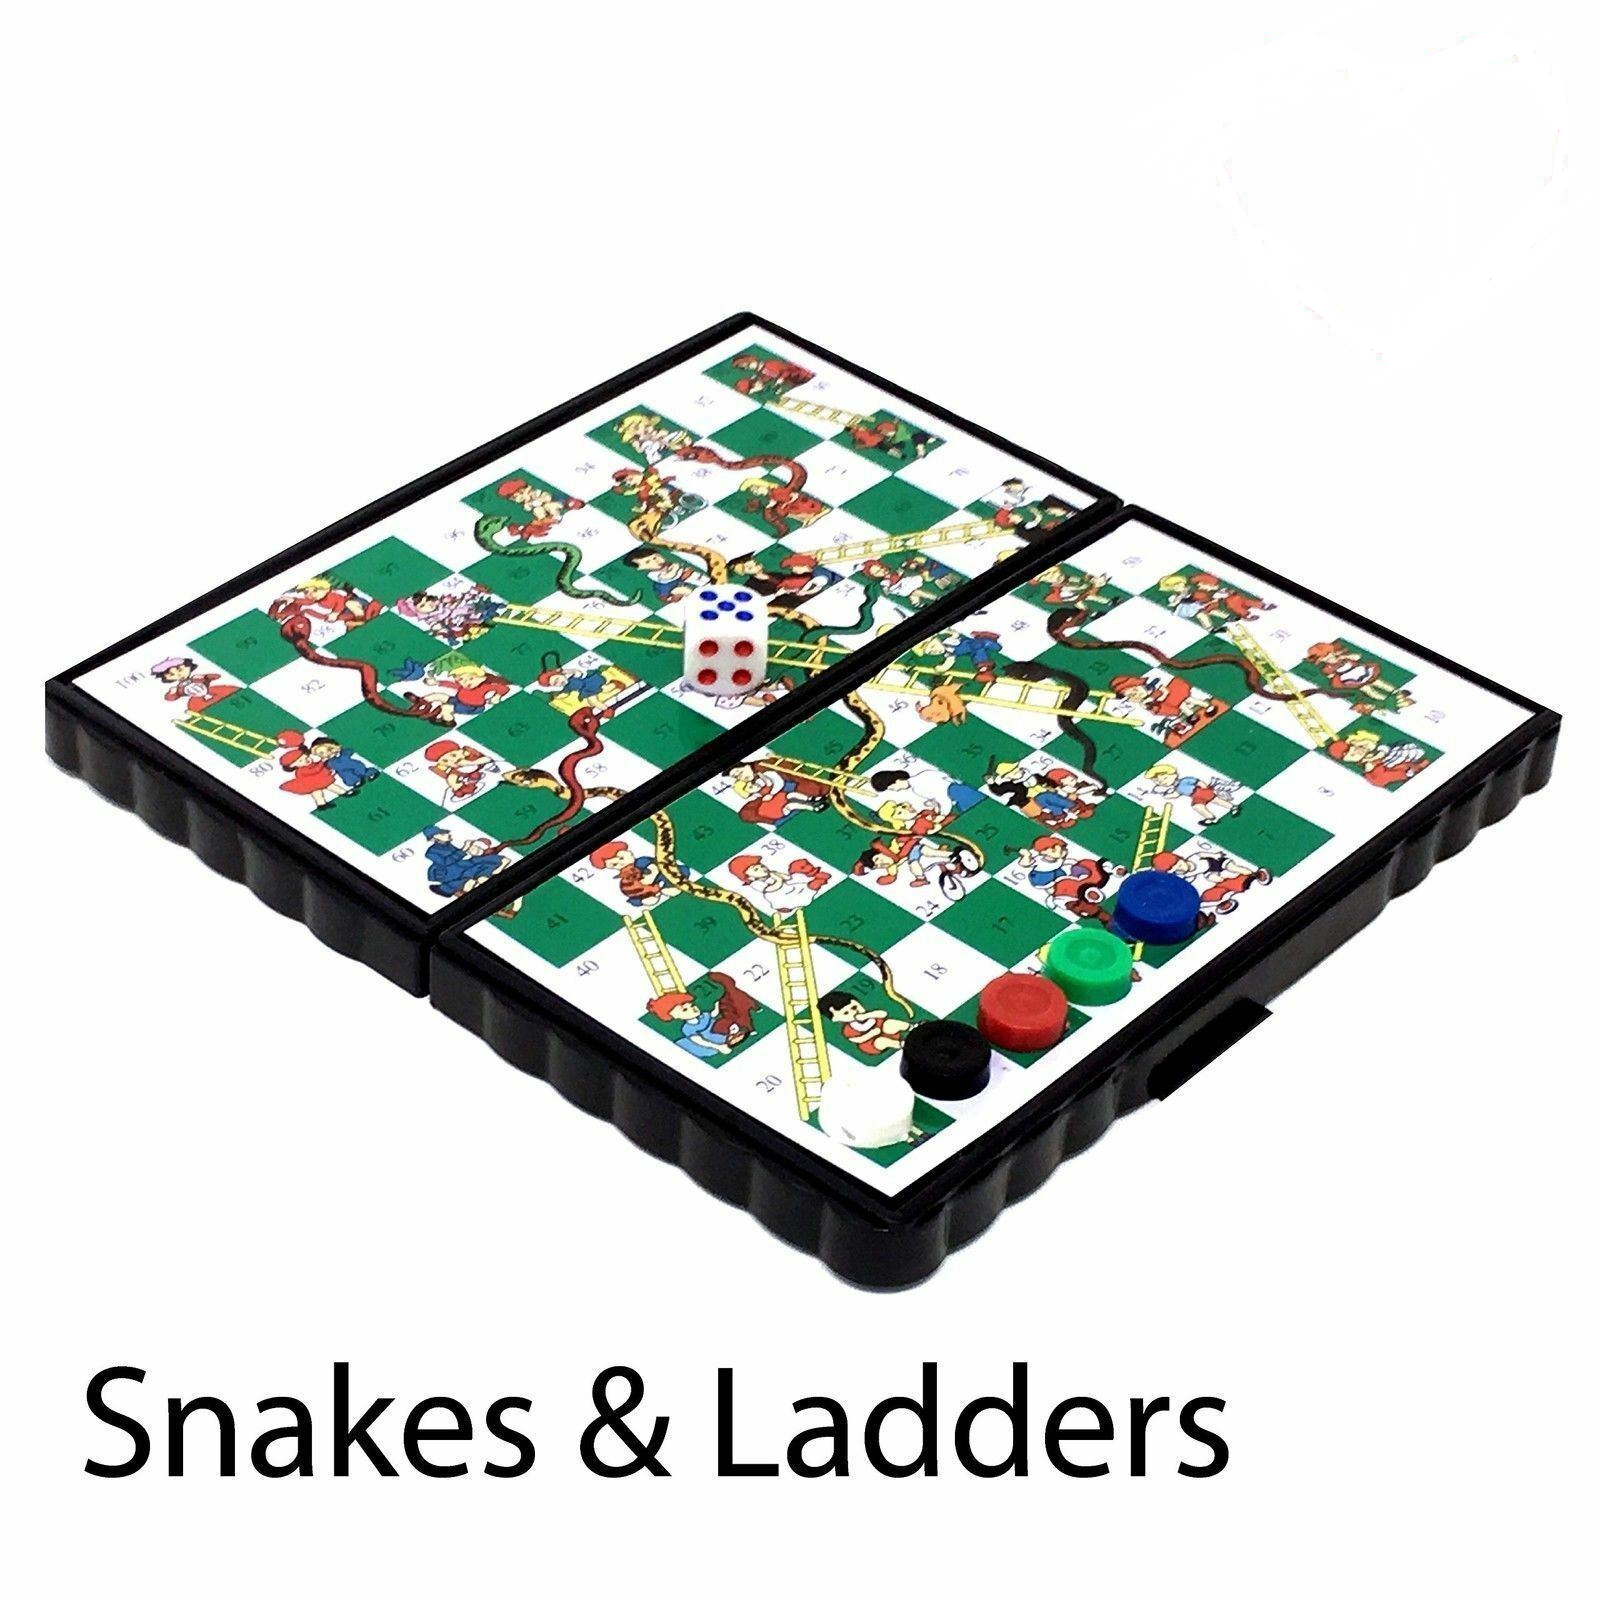 Magnetic Travel Board Games set of 4 - snakes & ladders, ludo, chess, draught 5